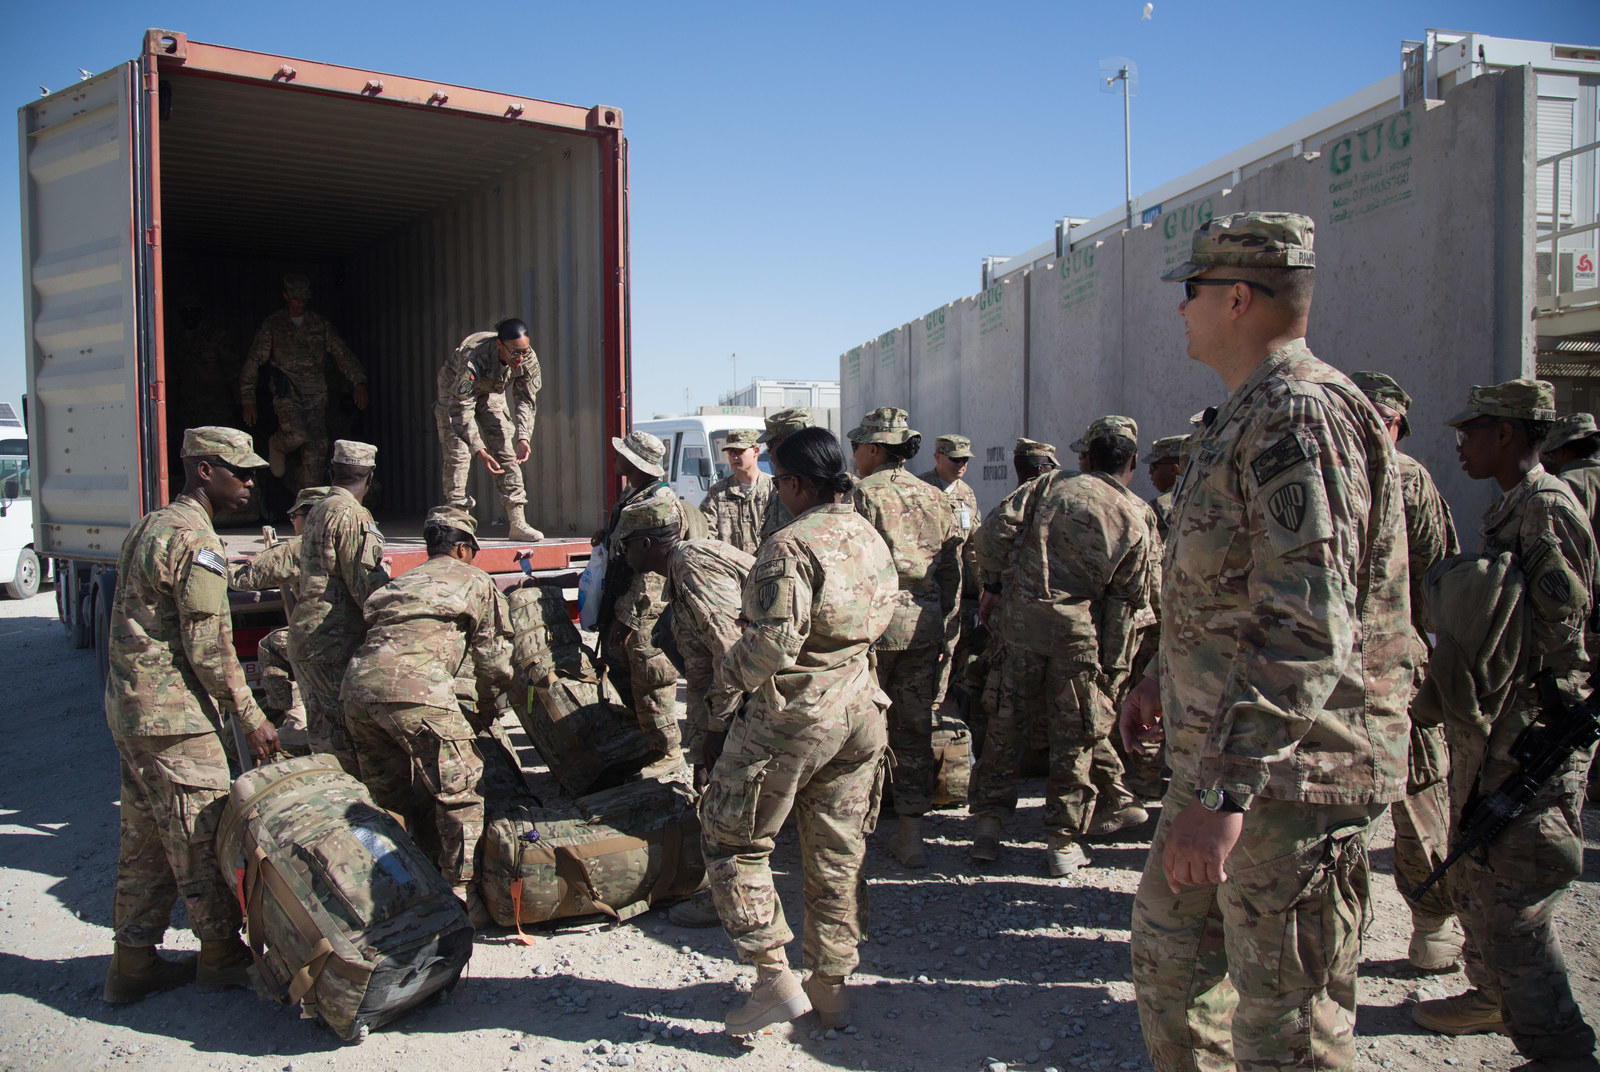 """In December 2014, the US combat mission in Afghanistan officially ended. Force levels dropped down to 30,000 amid a """"drawdown"""" meant to hand over control of security to Afghan forces. When Obama left office, there were still about 8,400 US forces left in the country to continue to train and advise the Afghans."""